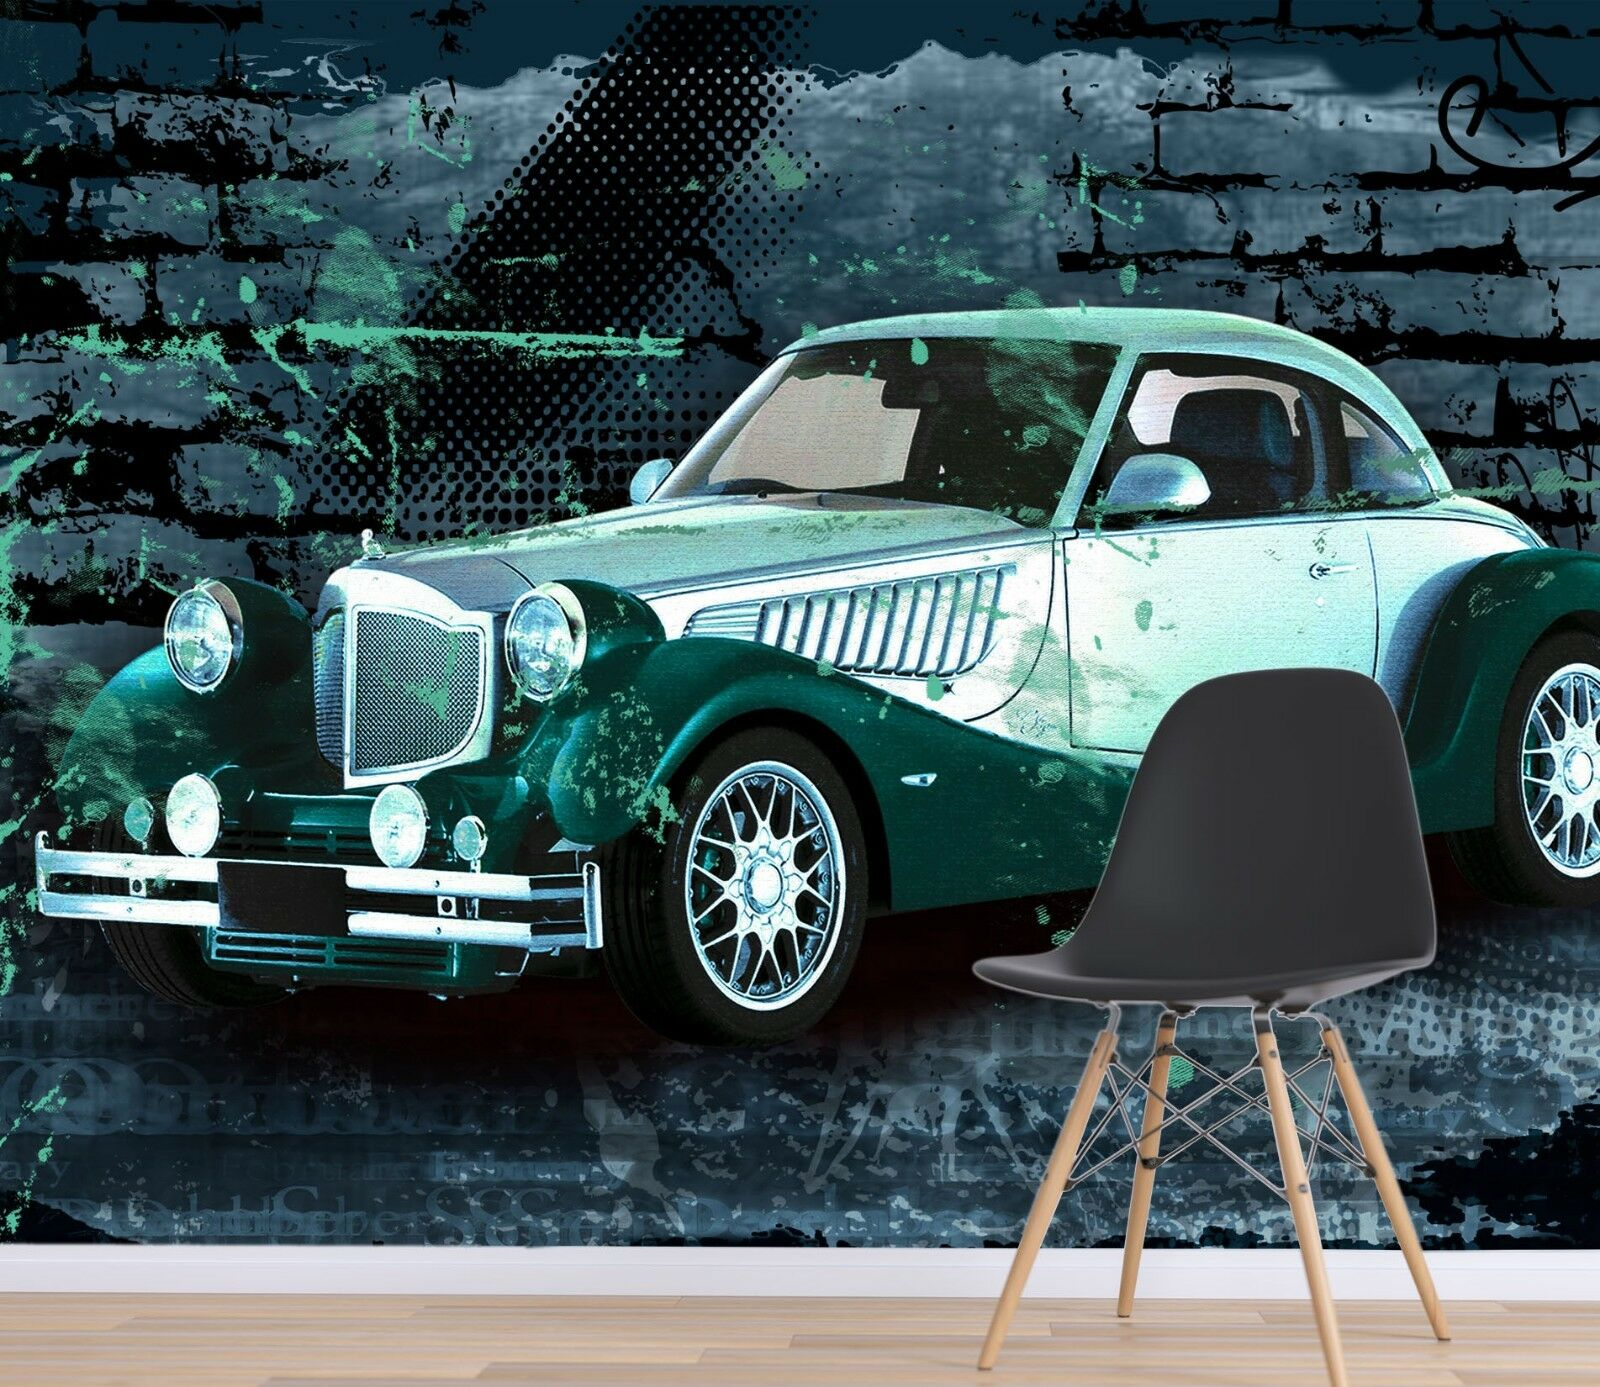 3D Anime World Car 563 Wallpaper Murals Wall Print Wallpaper Mural AJ WALL UK